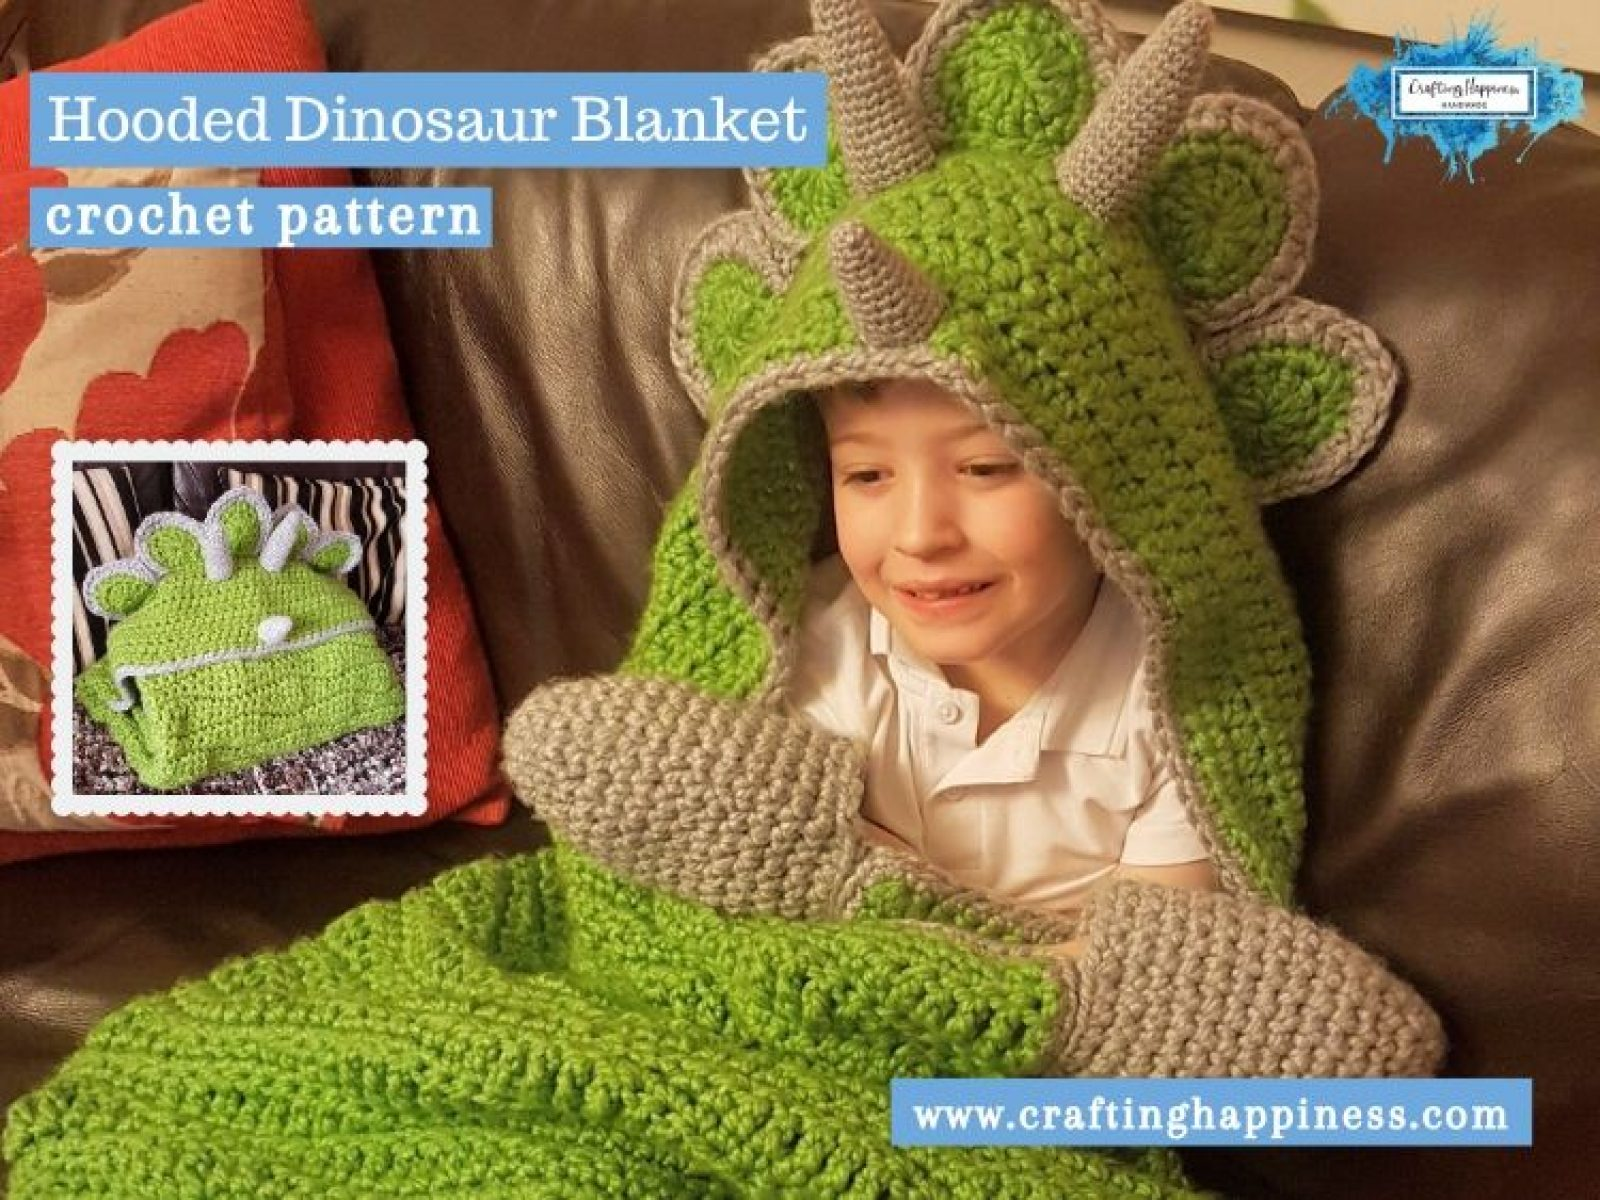 Hooded Dinosaur Blanket by Crafting Happiness FACEBOOK POSTER